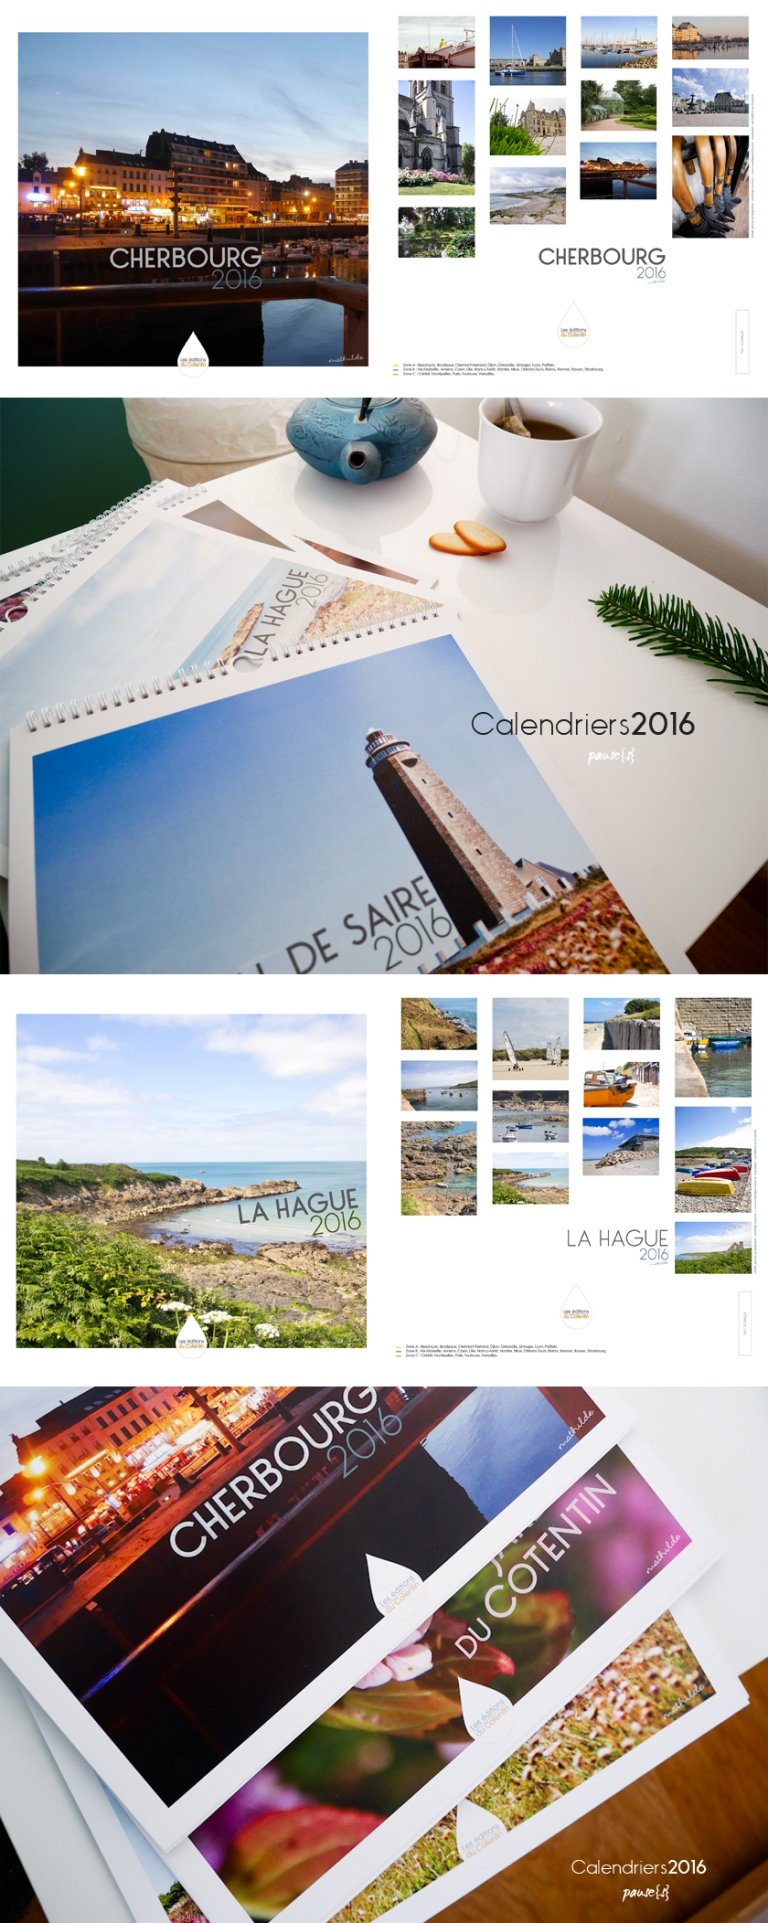 calendriers2016-1